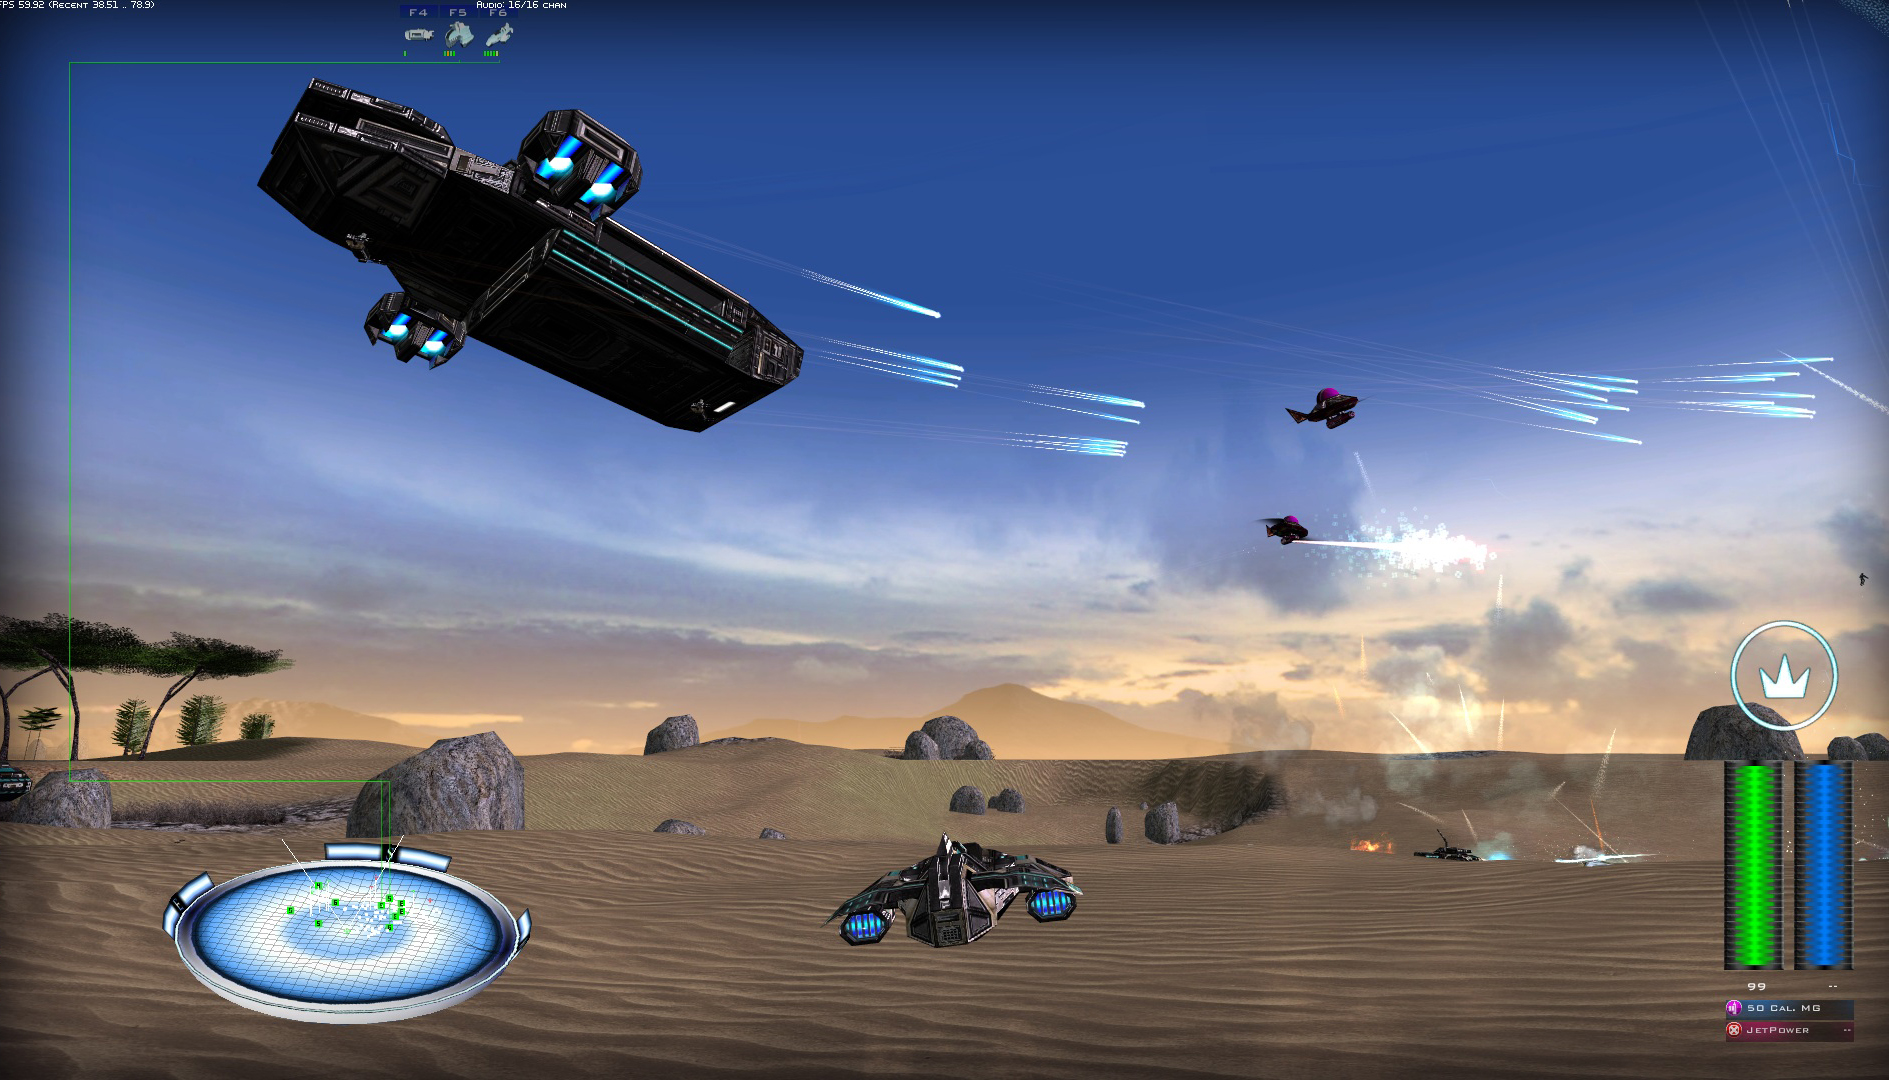 Invasion day image qf2 essence to a thief battlezone for Battlezone 2